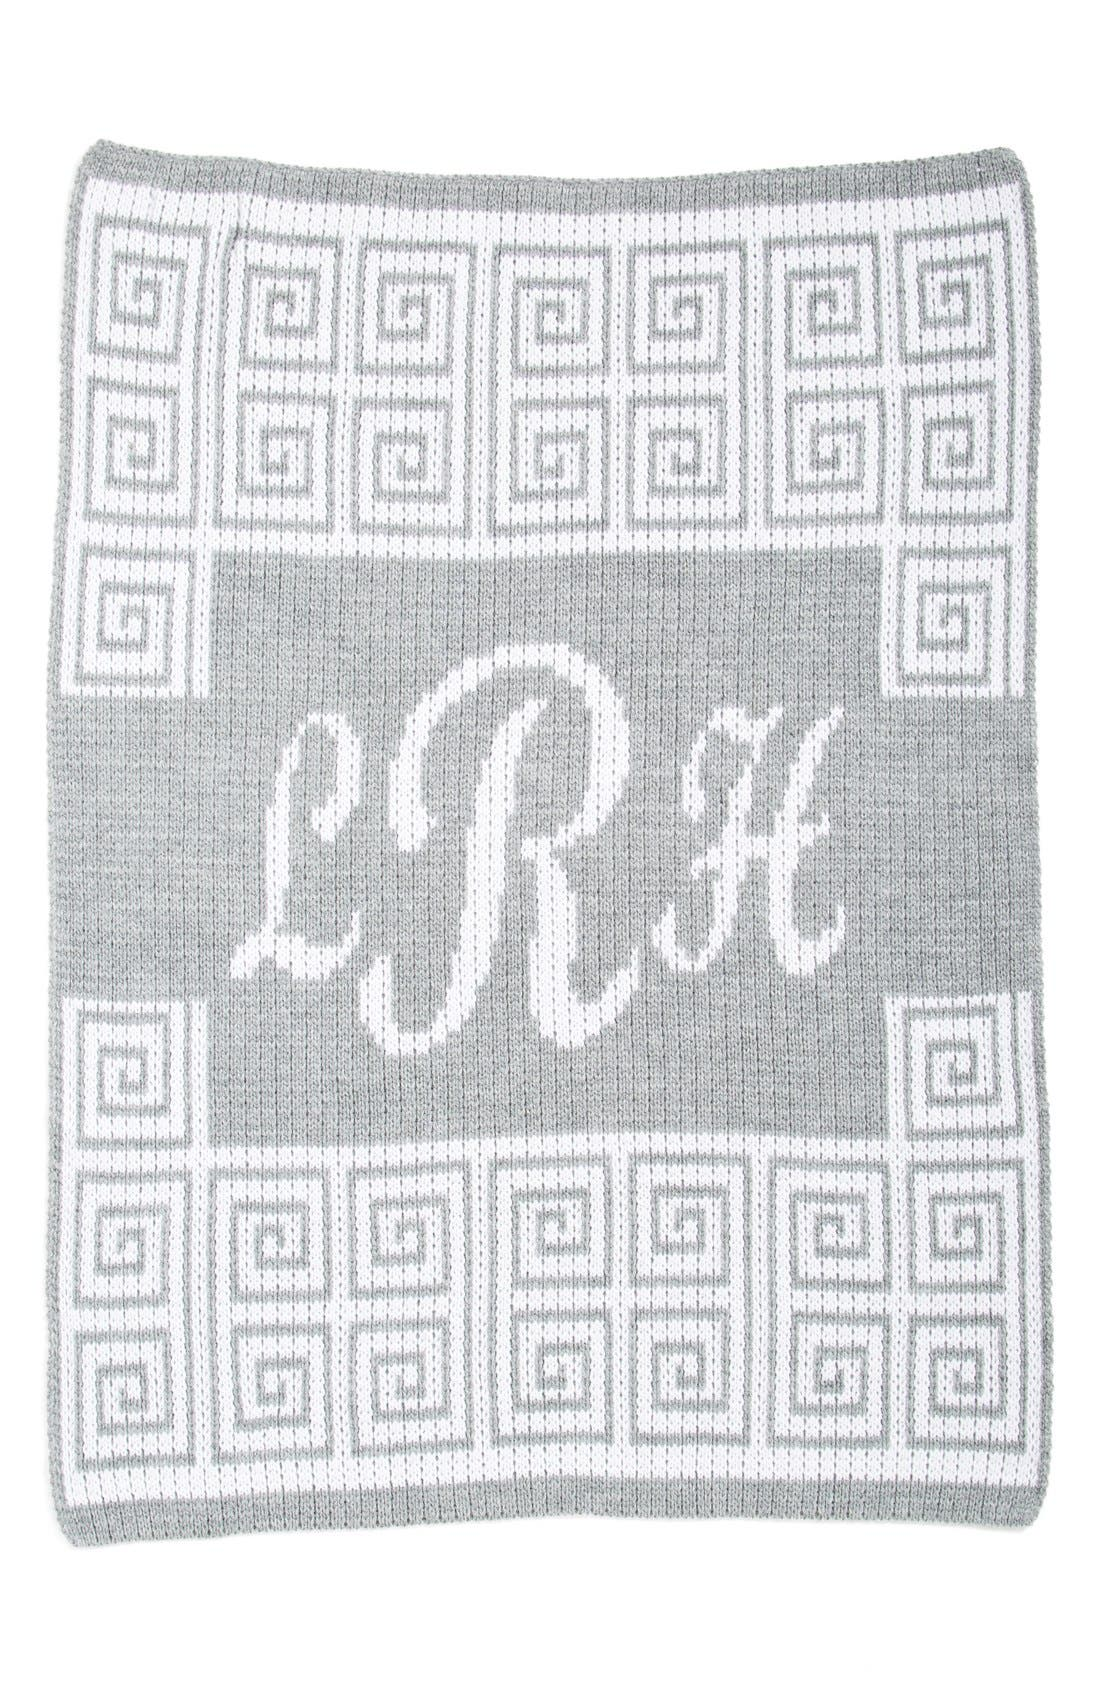 'Script' Personalized Blanket,                             Main thumbnail 1, color,                             HEATHER GREY/ OFF WHITE